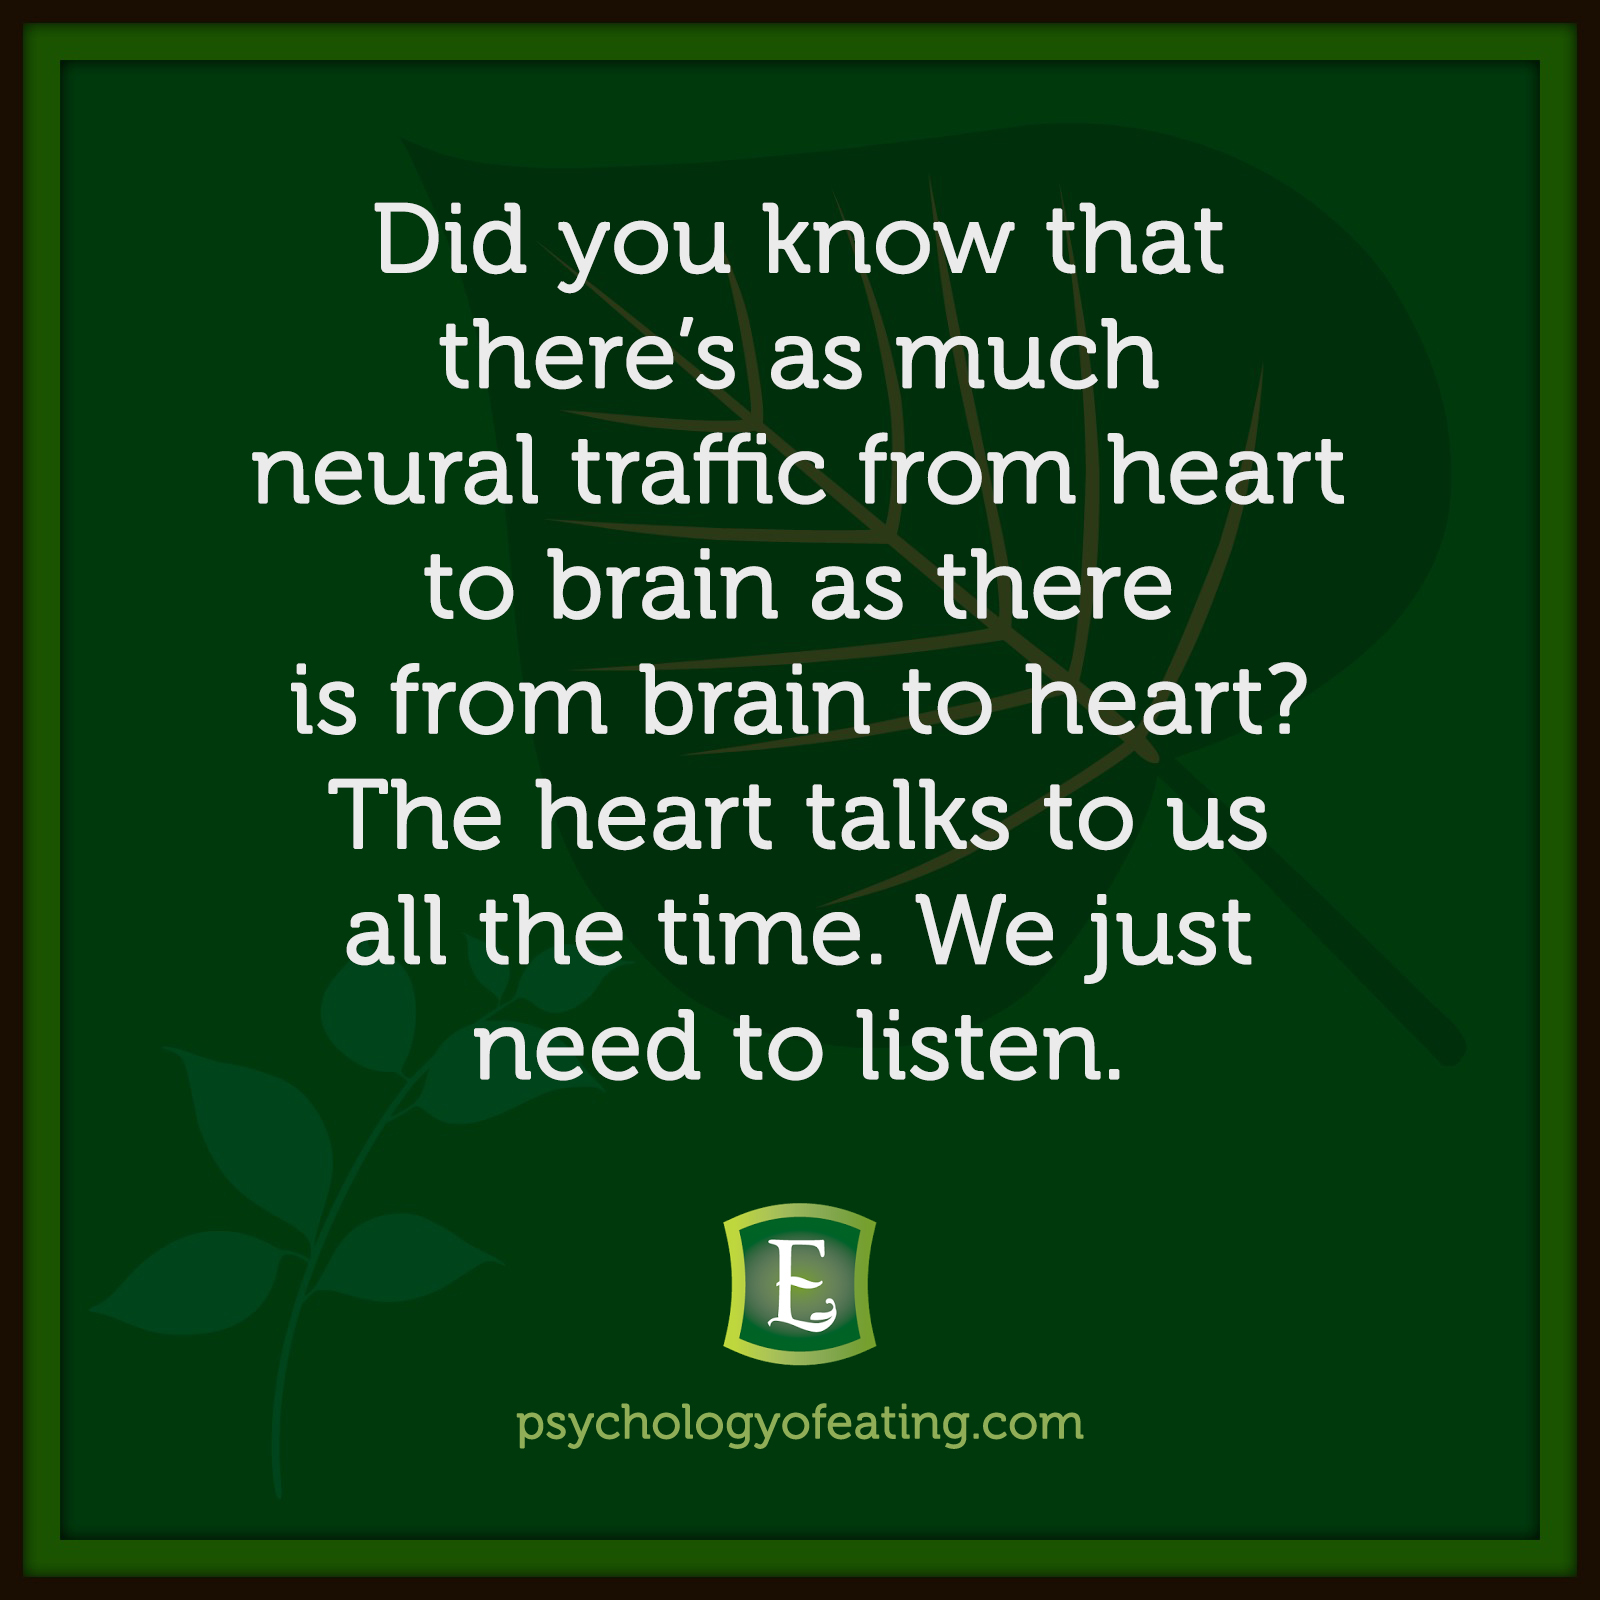 Did you know that there's as much neural traffic from heart to brain as there is from brain to heart? The heart talks to us all the time. We just need to listen.  #health #nutrition #eatingpsychology #IPE